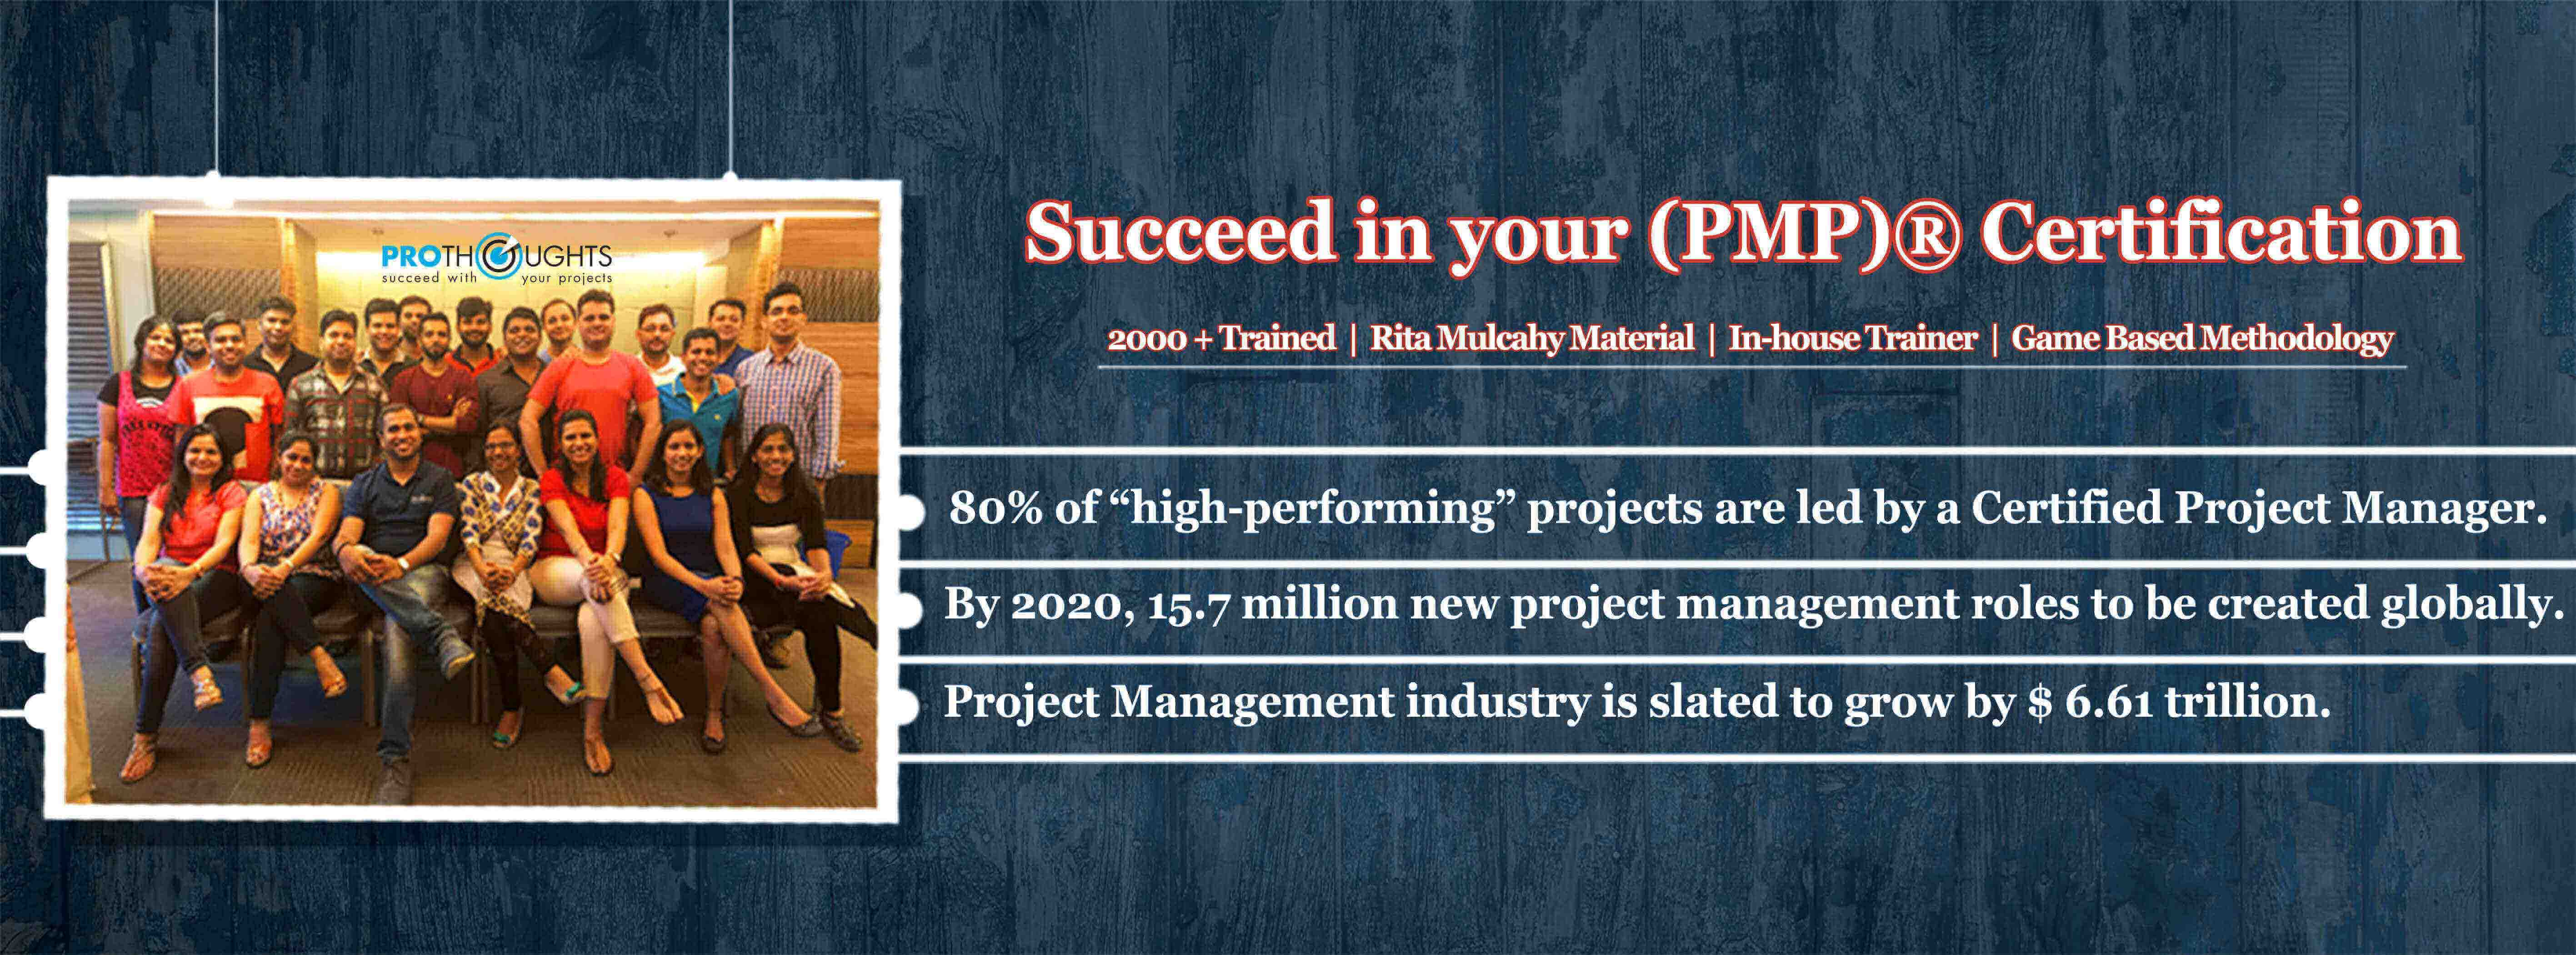 Pmp certification training course in mumbai prothoughts 1betcityfo Choice Image